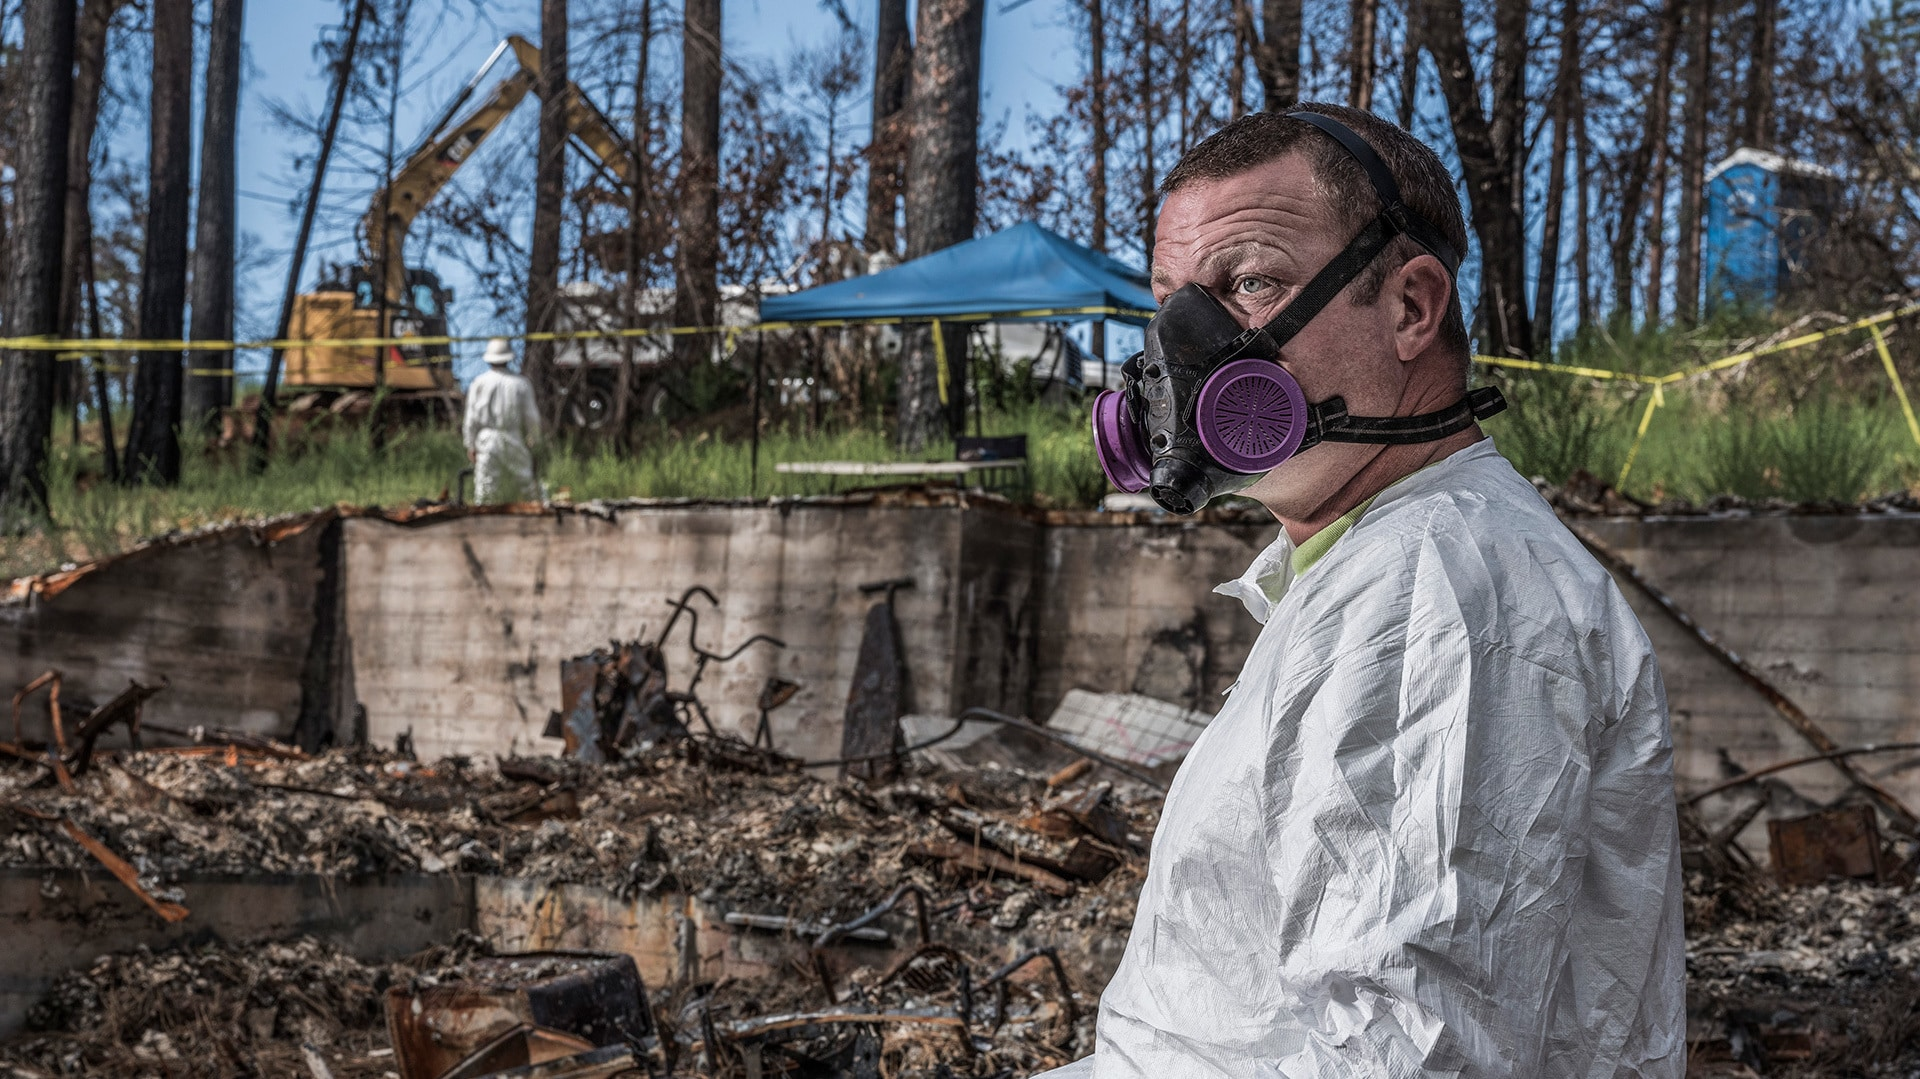 Mauny Roethler clearing debris in Paradise, California. (Photo by National Geographic/Pete Muller)